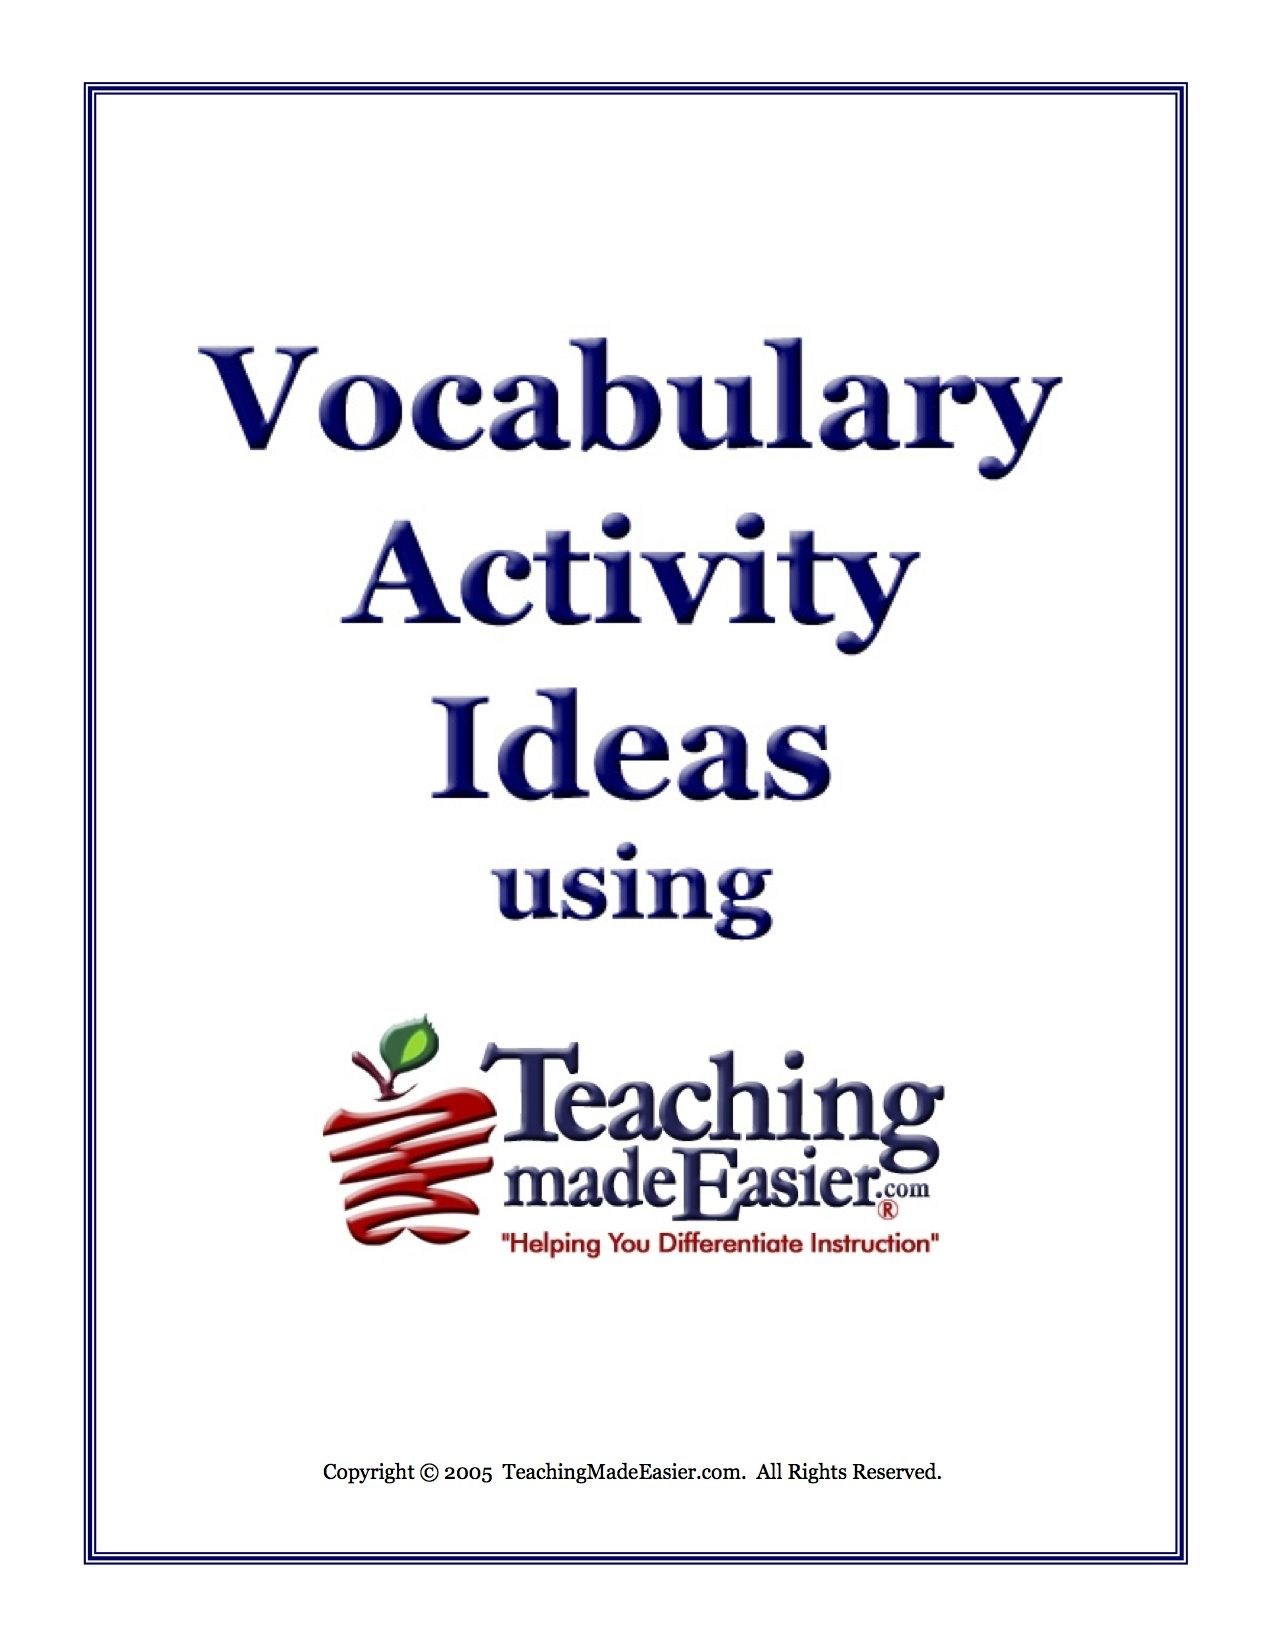 Vocabulary Activity Ideas And Lesson Plans Using Teachingmadeeasier Download The Free